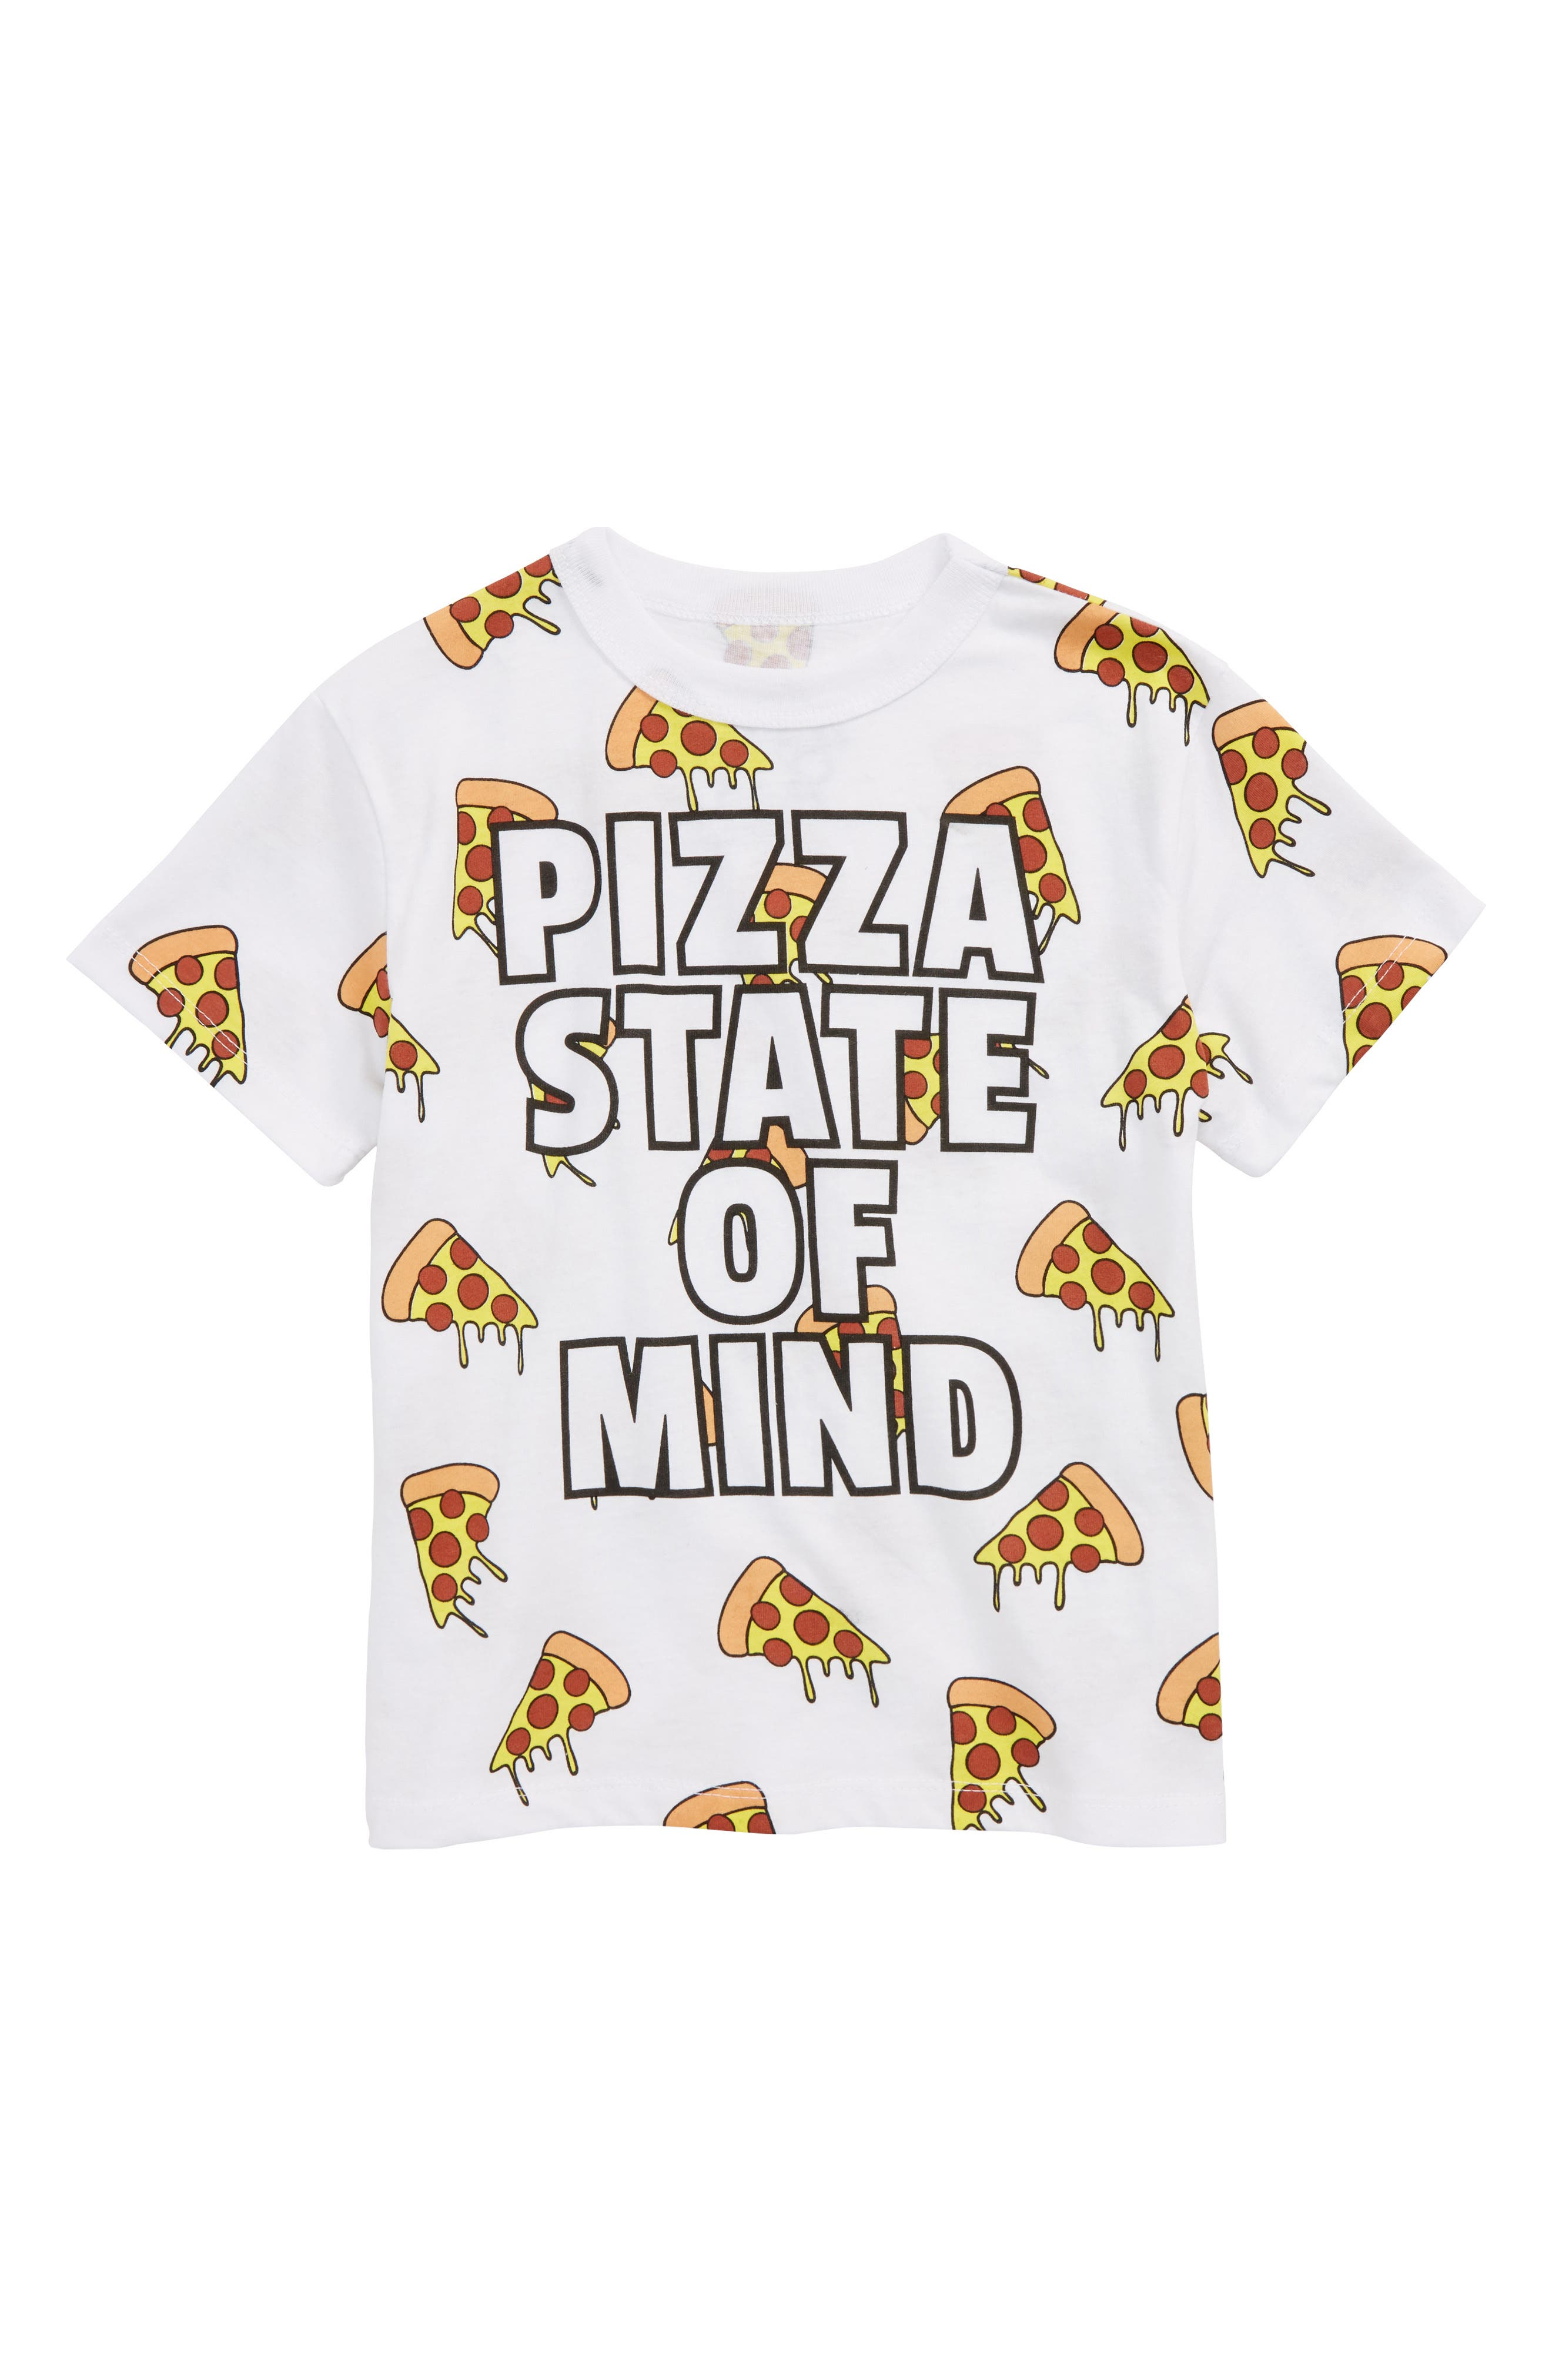 Pizza State of Mind T-Shirt,                         Main,                         color, White